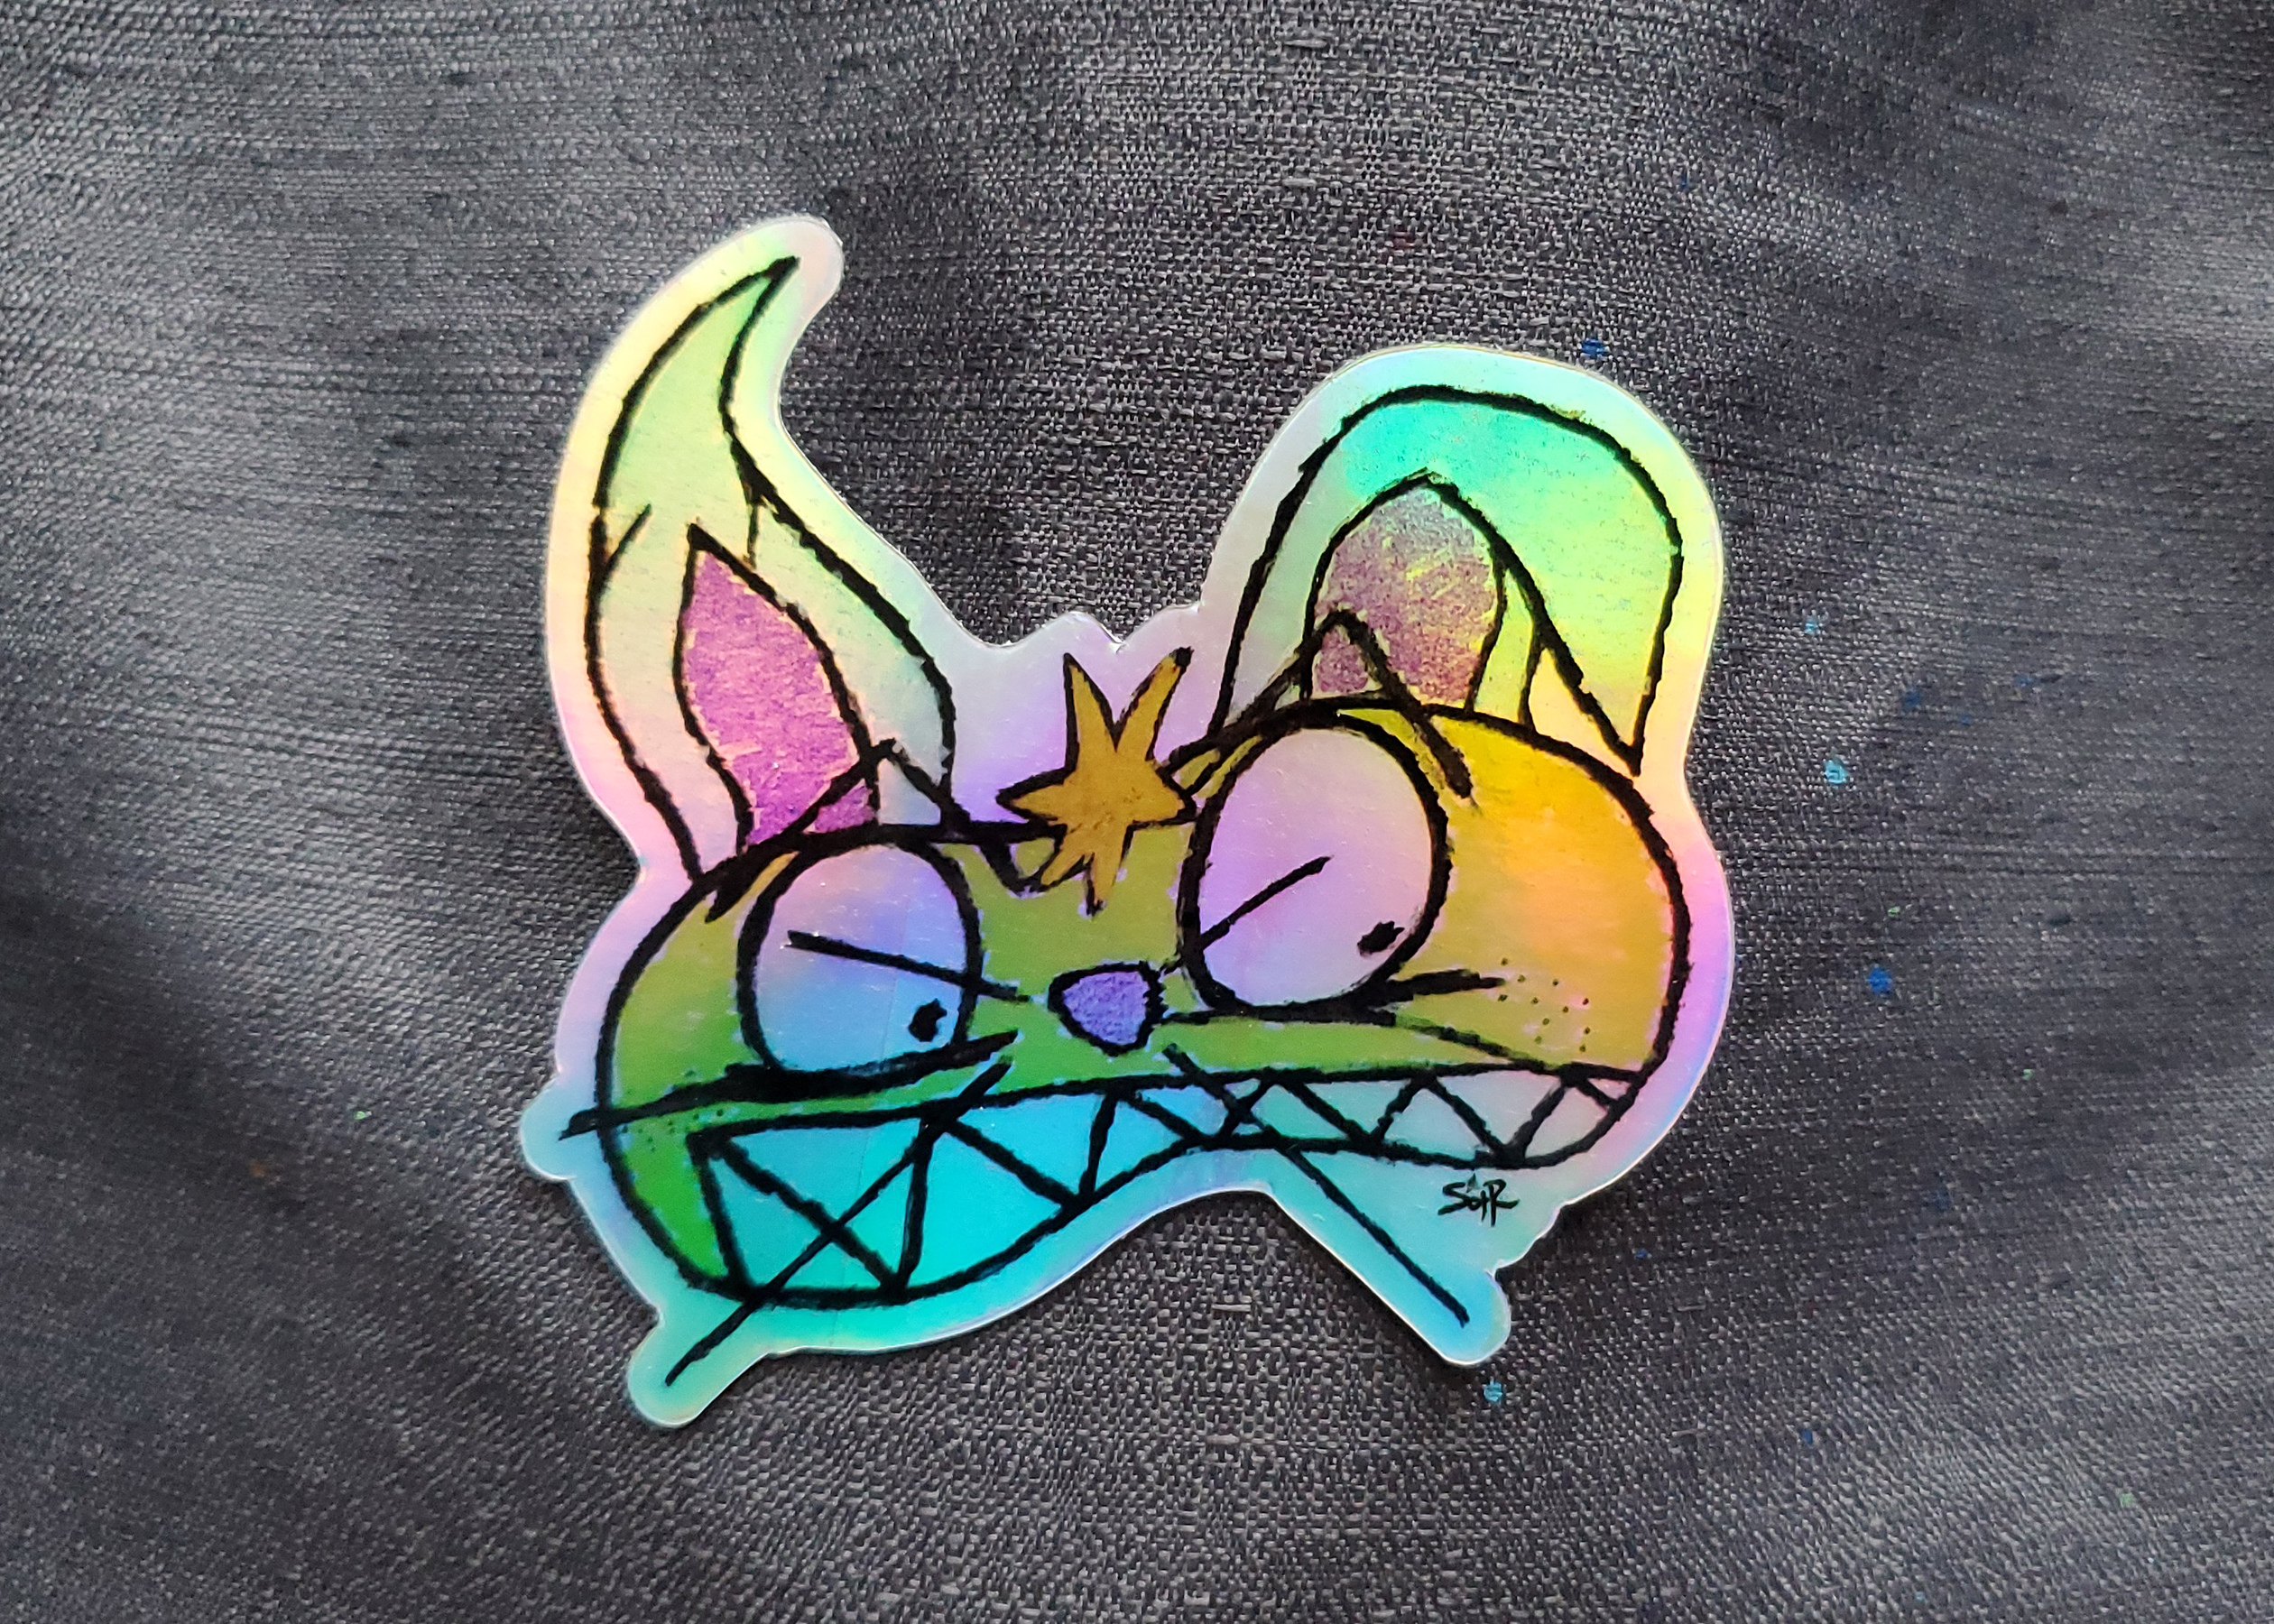 The Agony of the Sweet Holographic Sticker